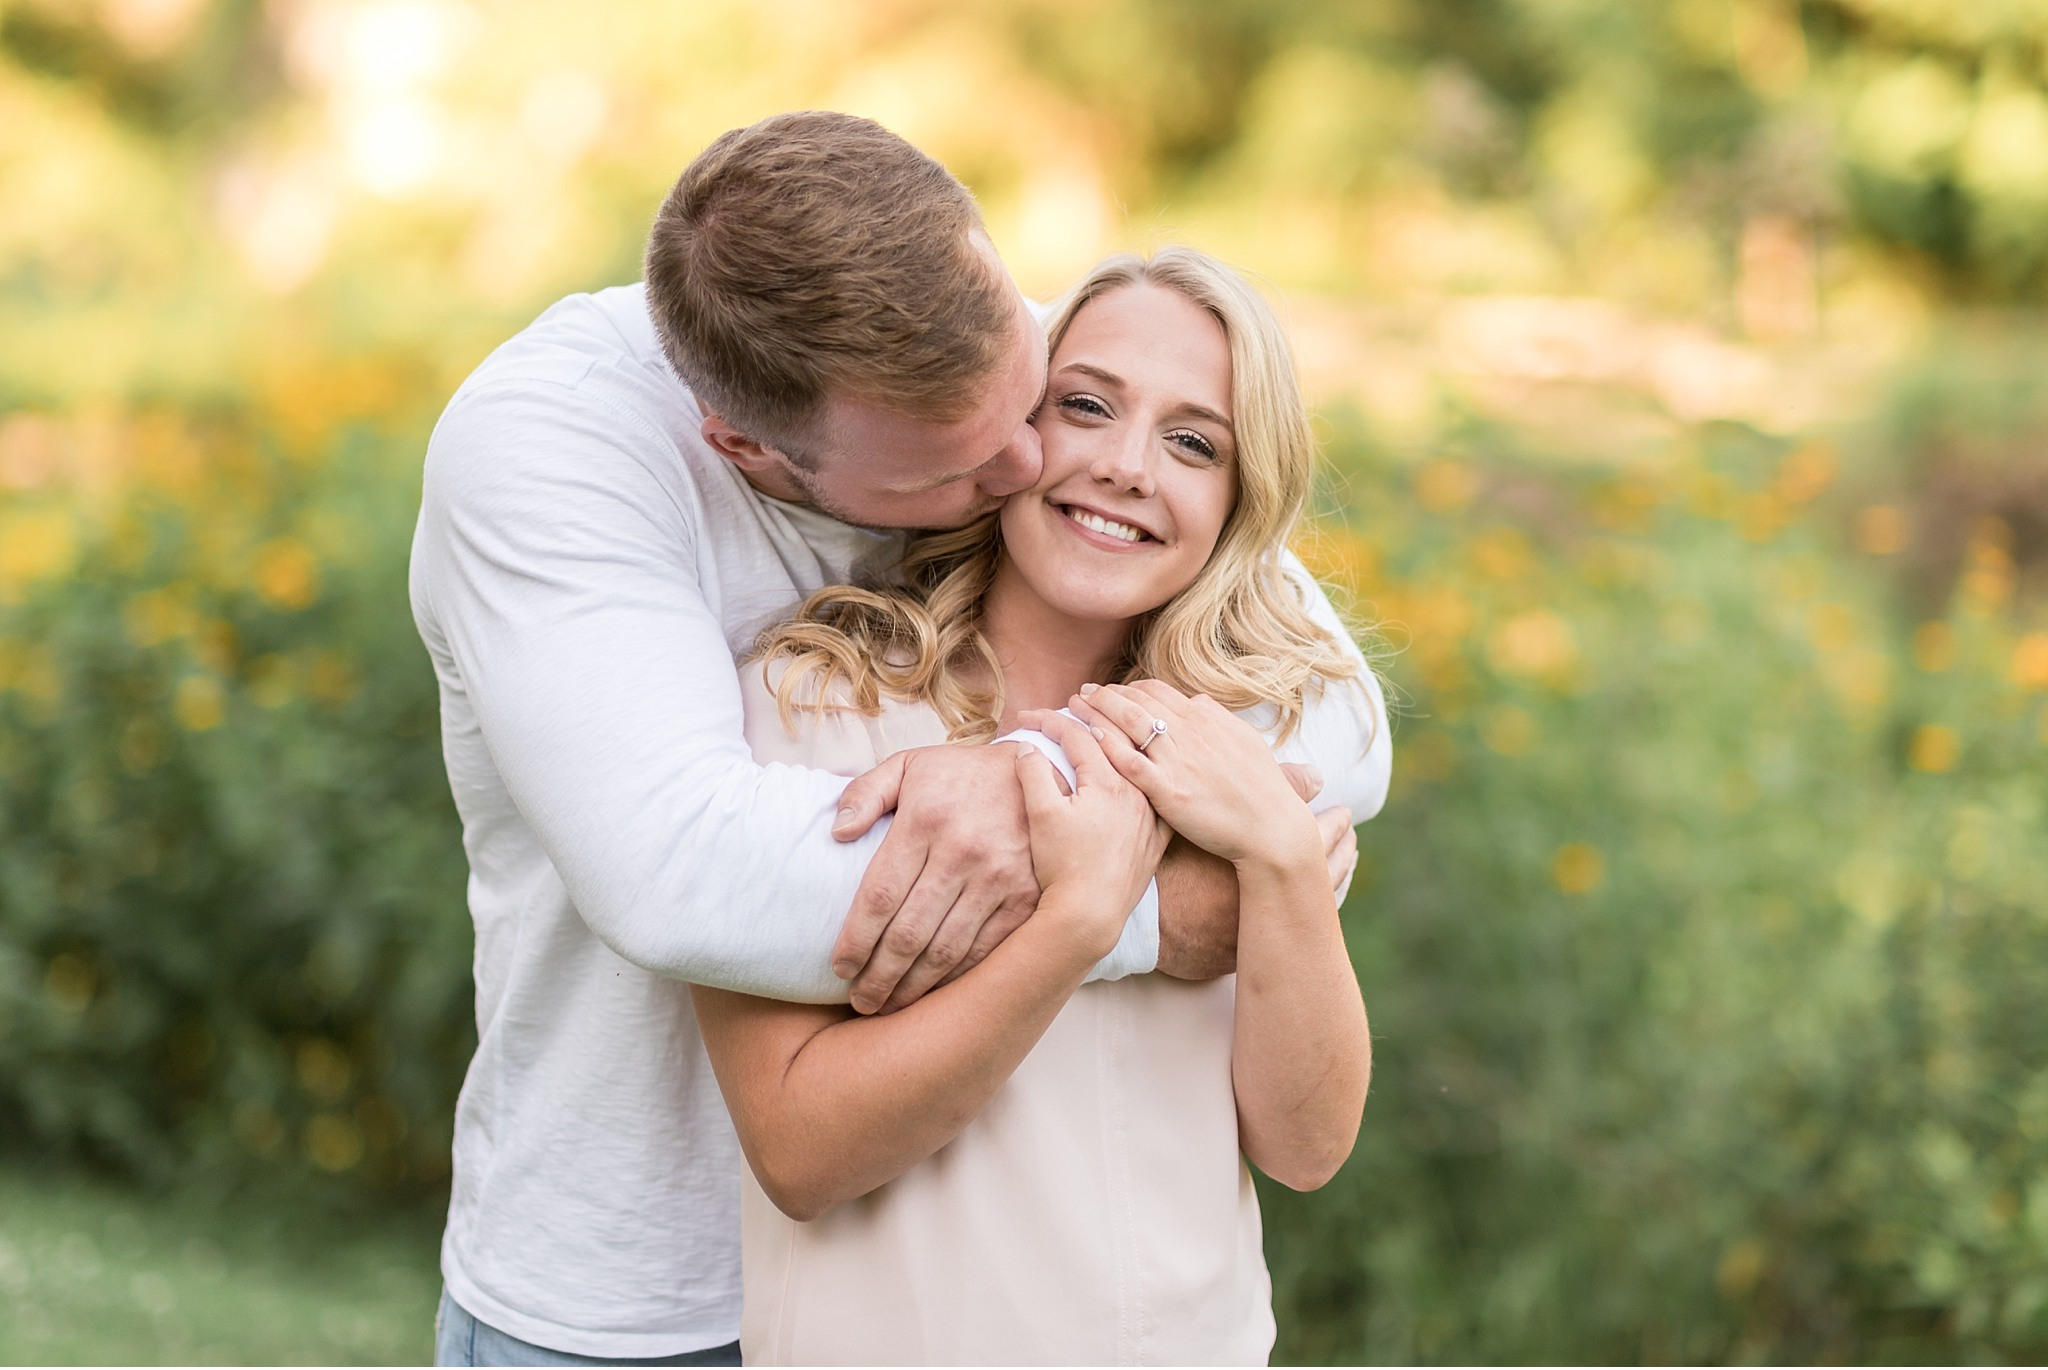 Grings Mill Berks County Light and Airy engagement session at golden sun Wedding Photography photo_1812.jpg